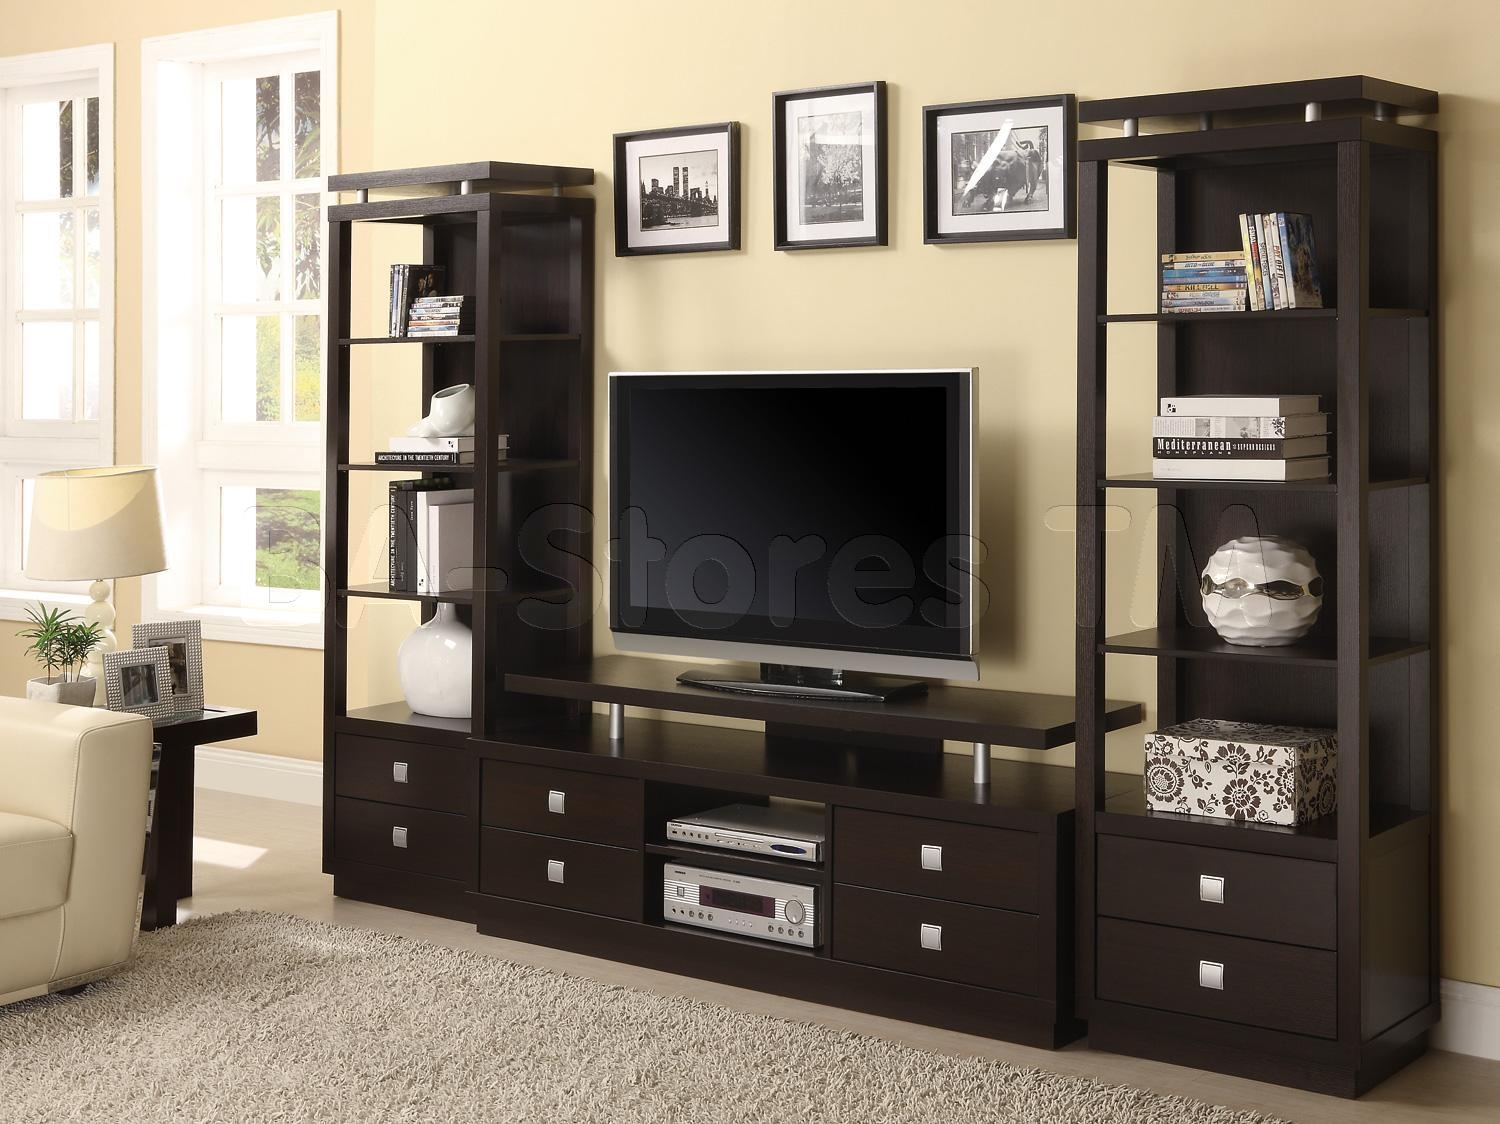 Modern Wall Units Living Roommodern Wall Units With Three Levels Intended For Radiator Cover Tv Stand (View 11 of 15)